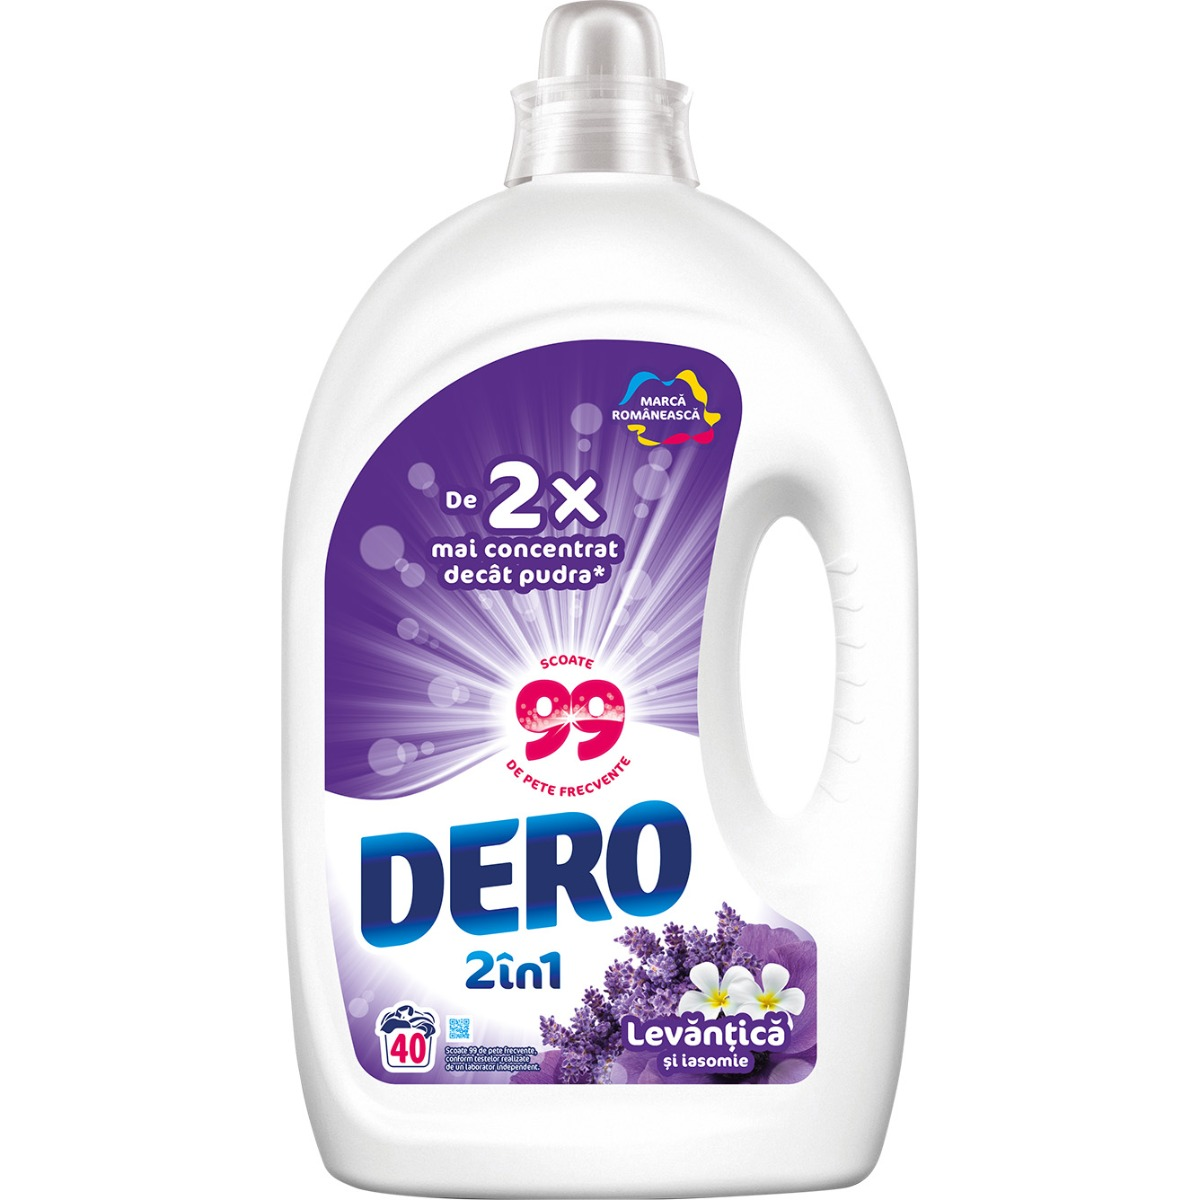 Detergent lichid Dero 2 in 1 Levantica, 40 spalari, 2 L imagine 2021